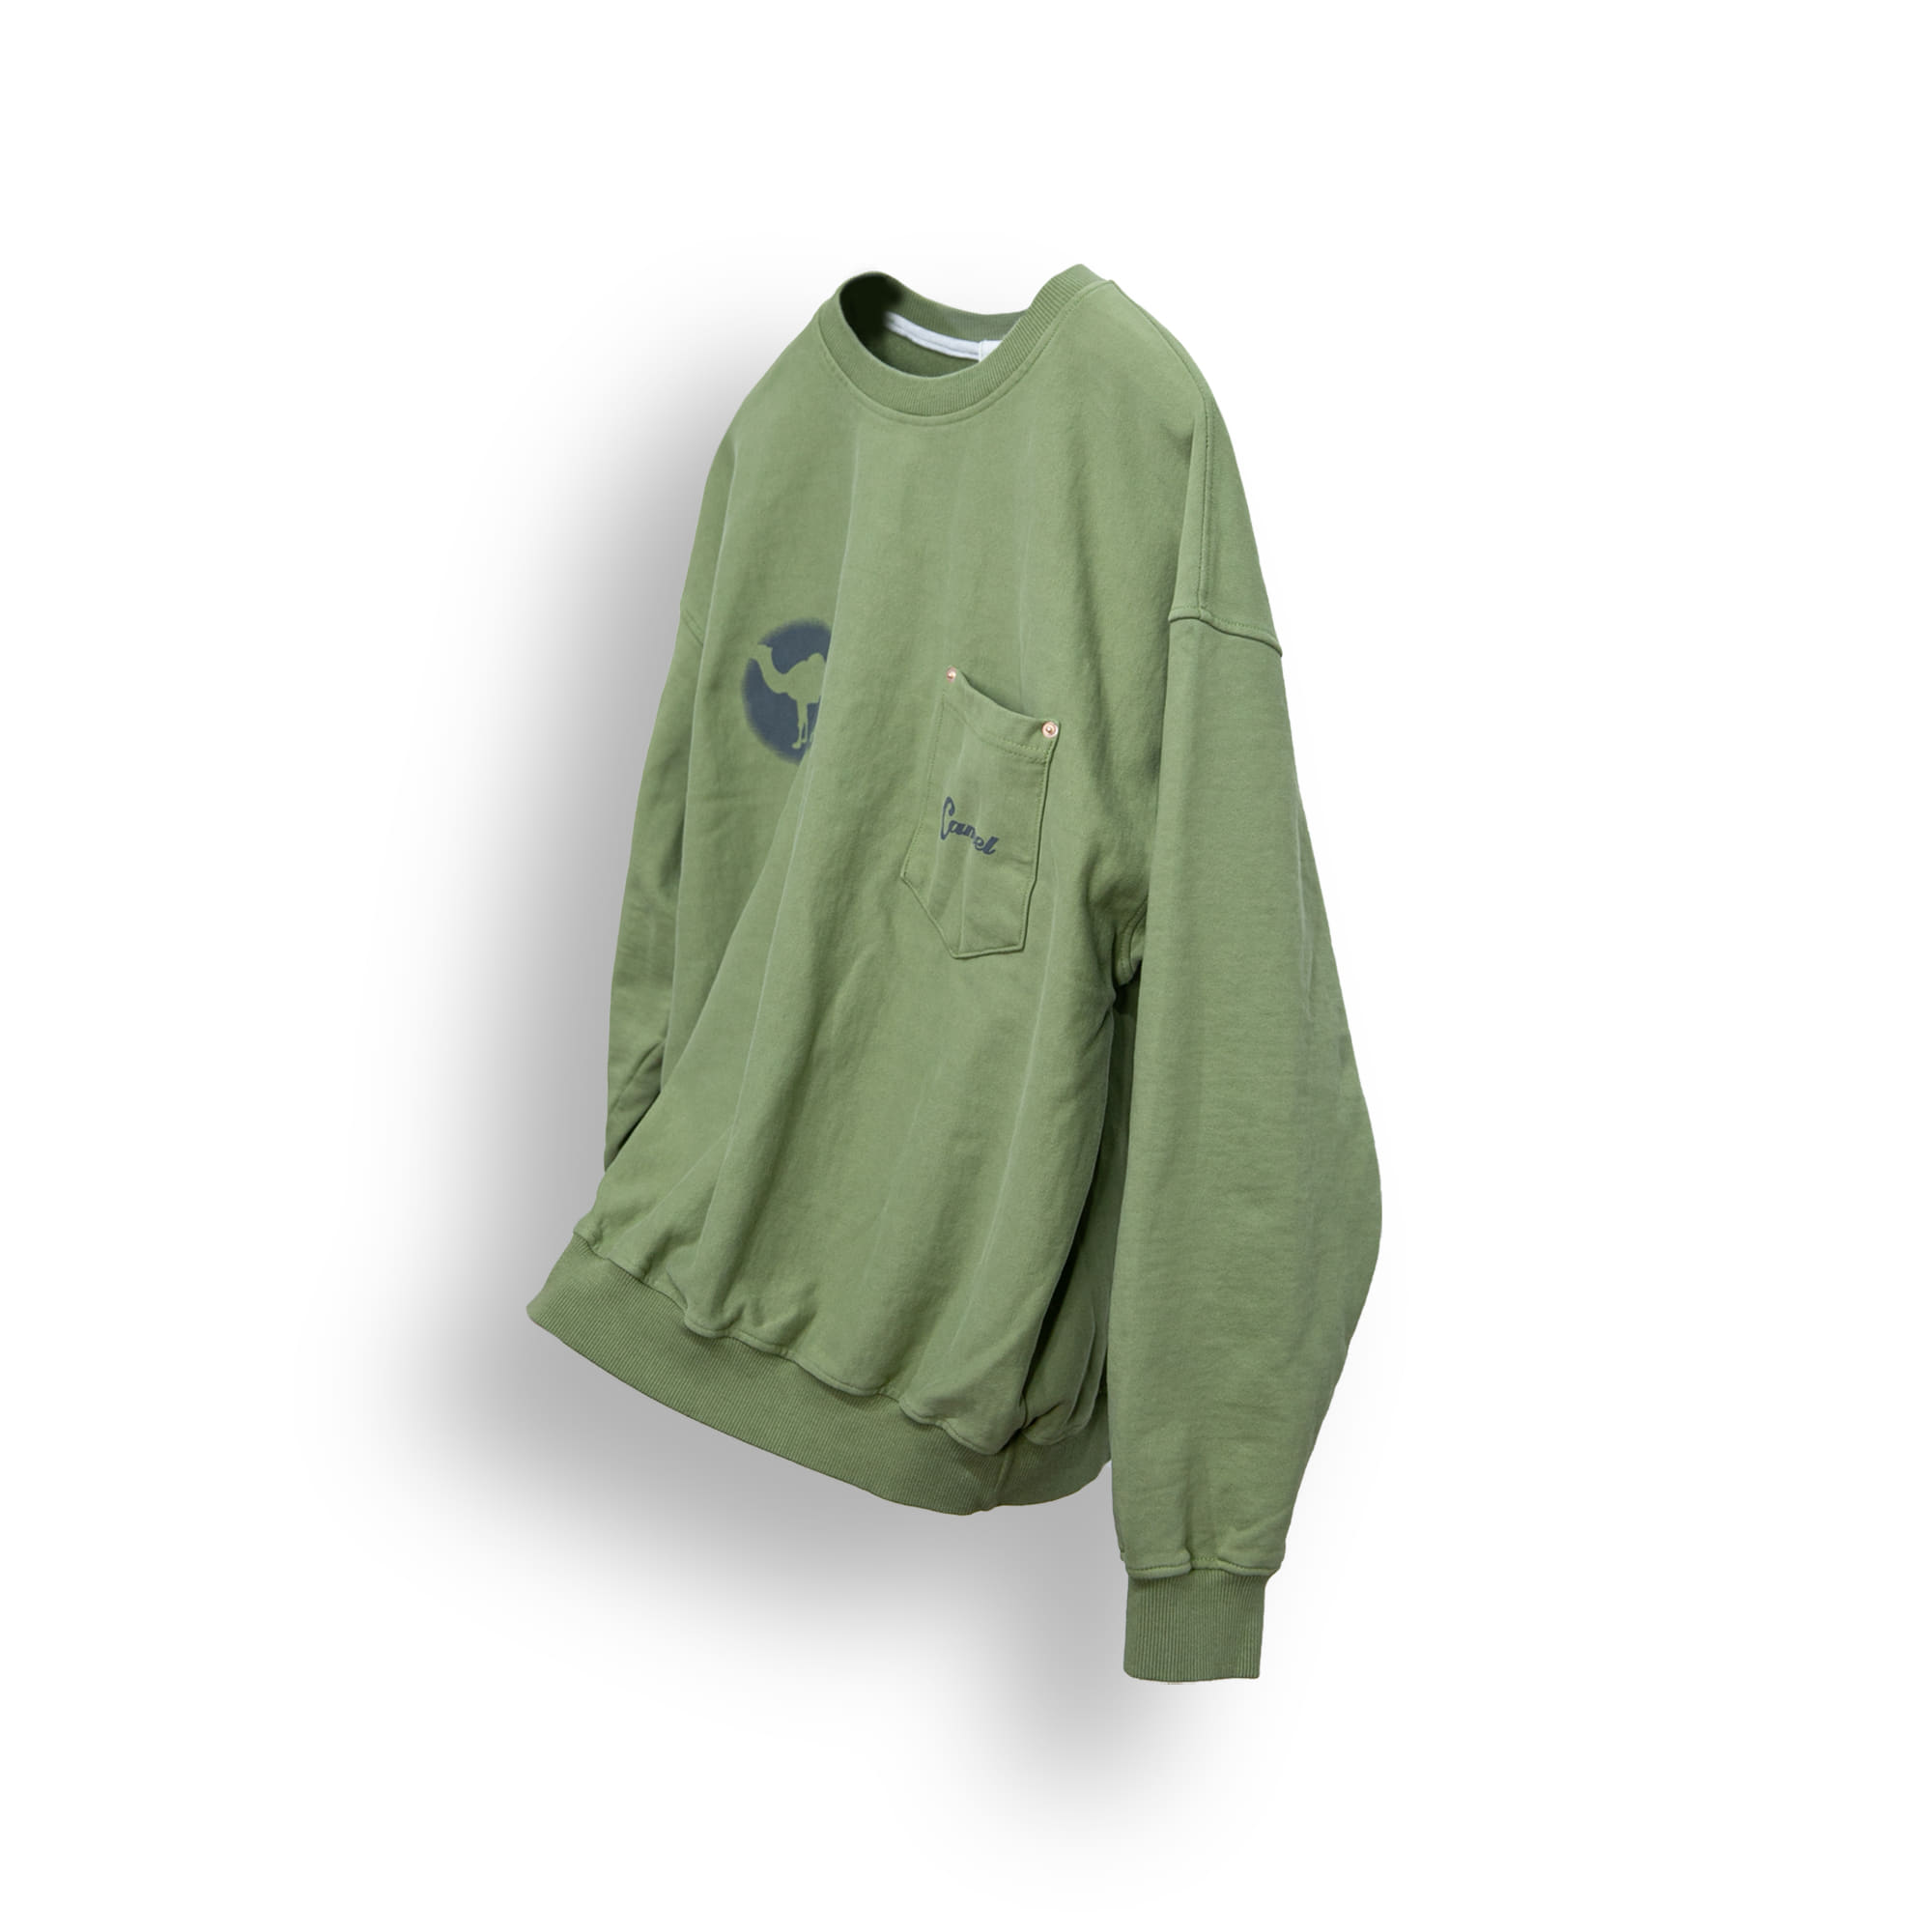 Washed Printing Over Sweat Shirt - Khaki